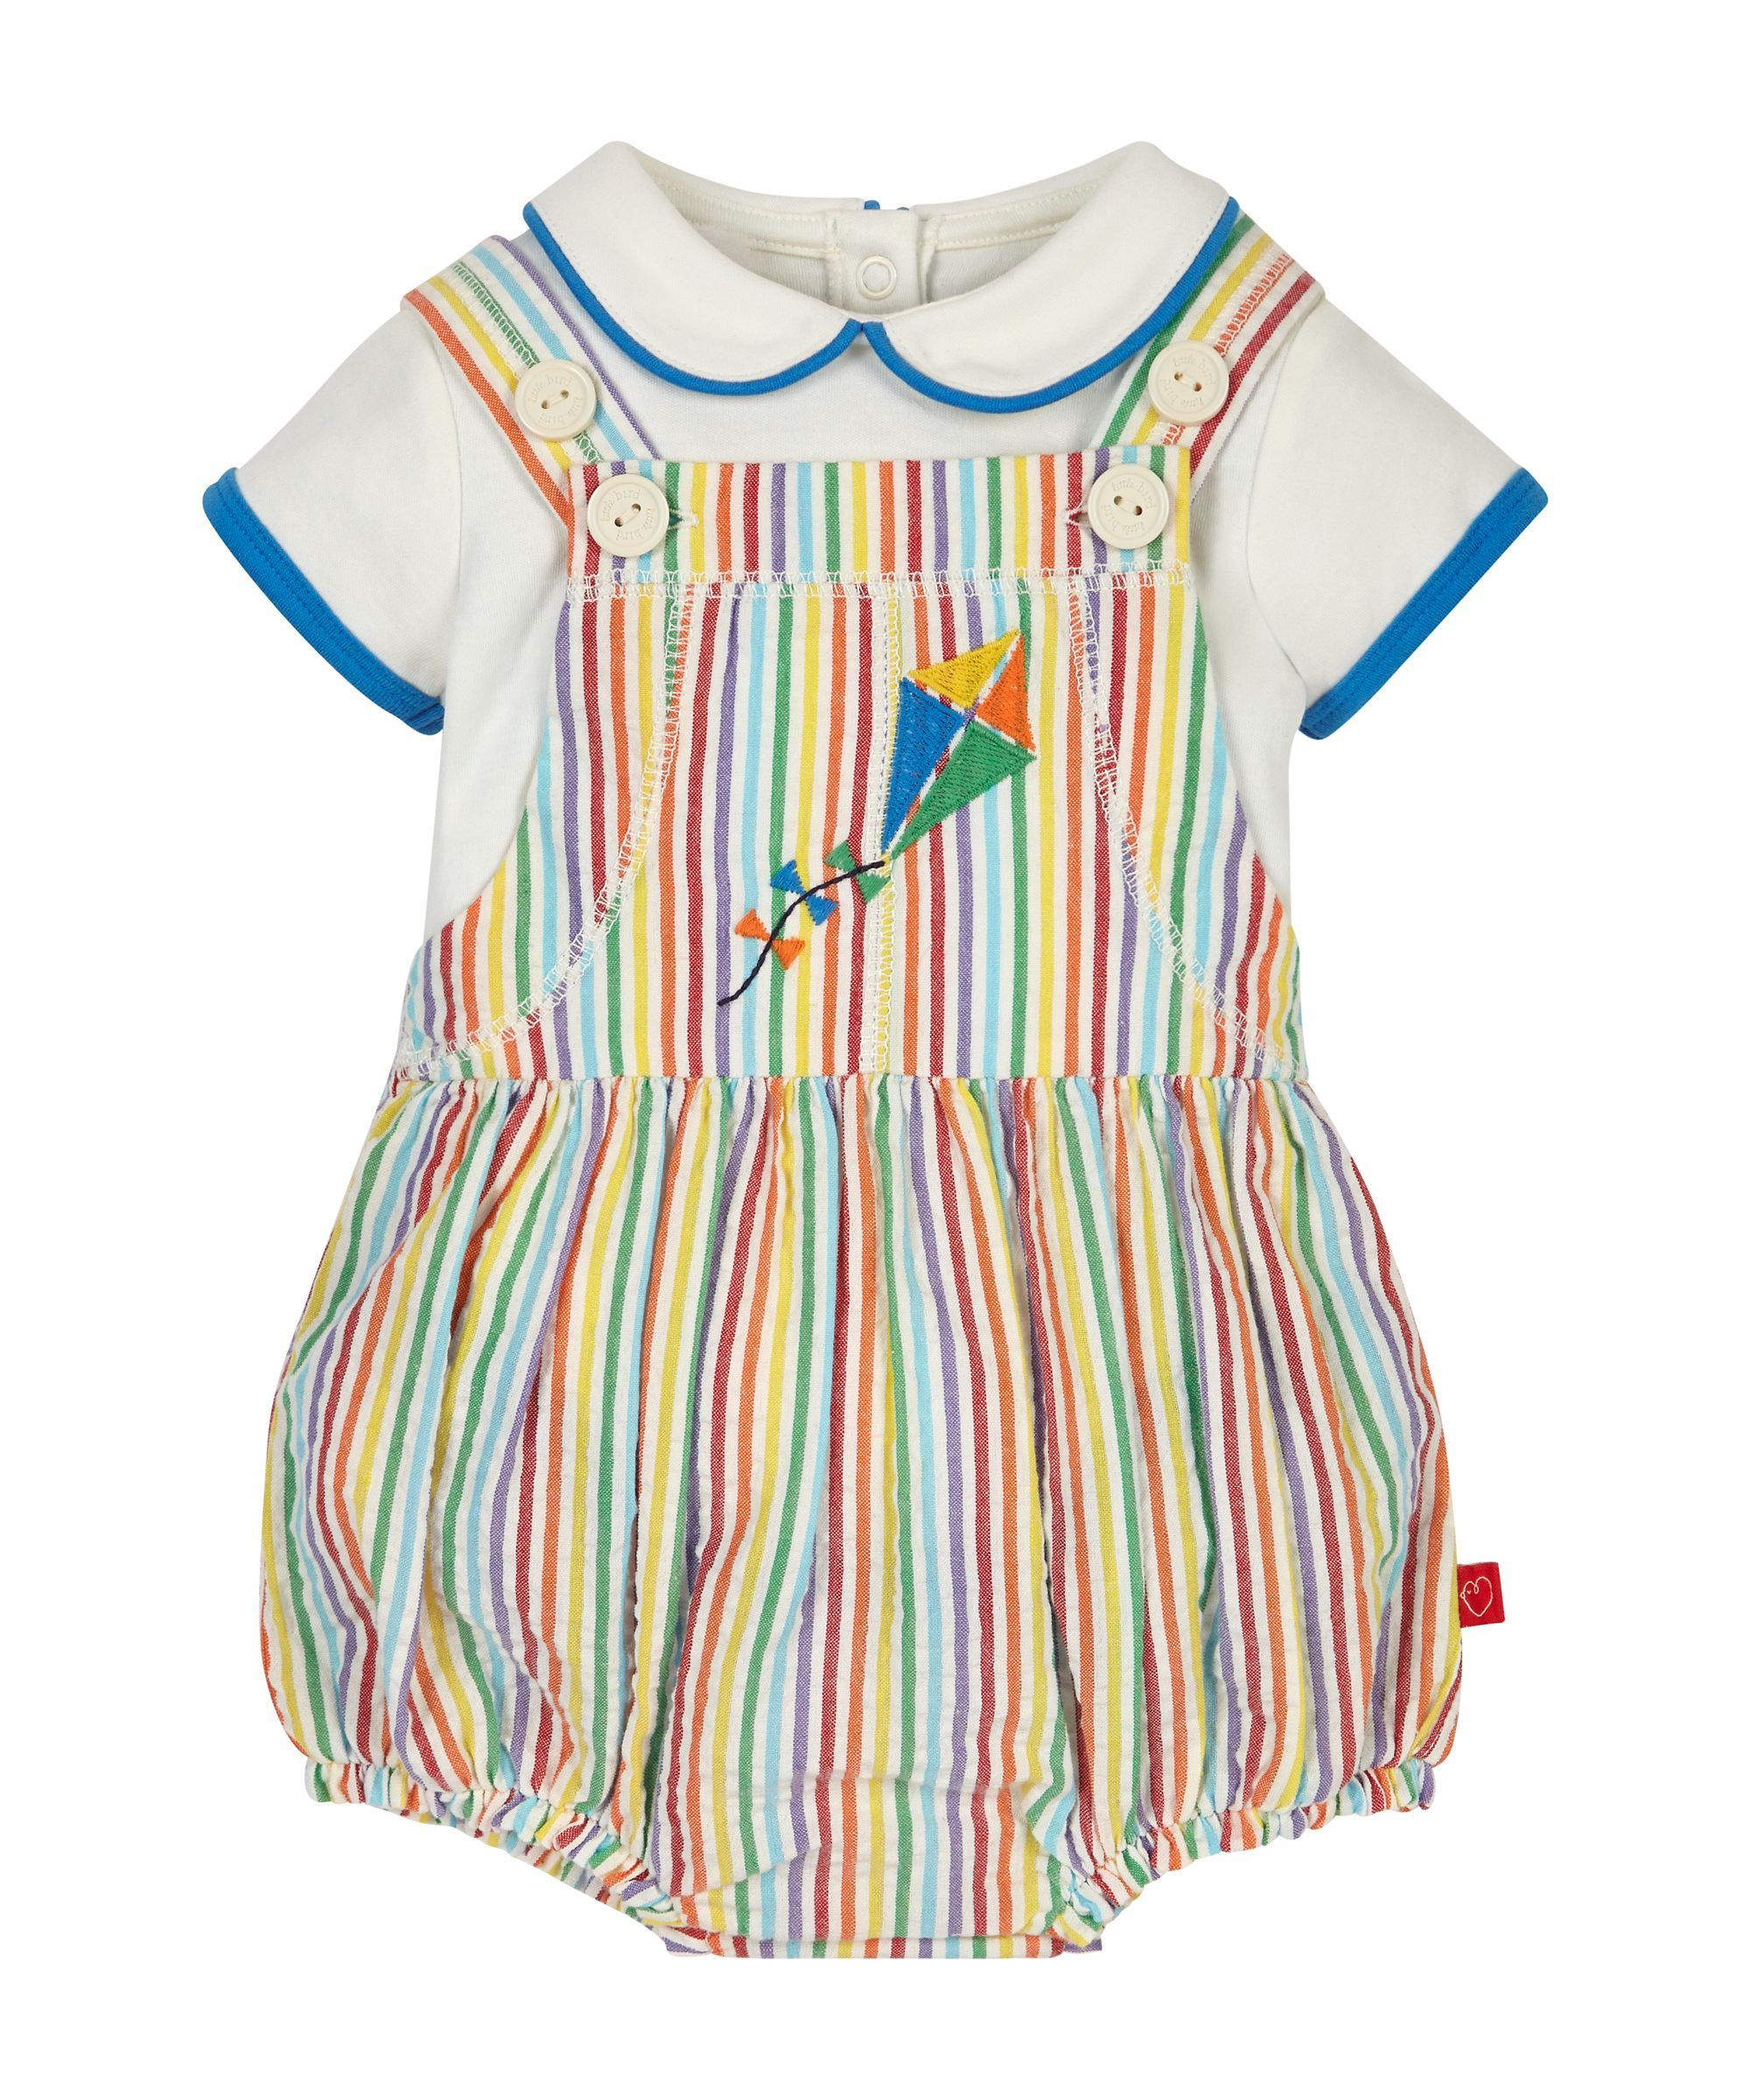 3dfbc279bad4 Little Bird by Jools Striped Dungaree and Bodysuit Set   knit wear ...